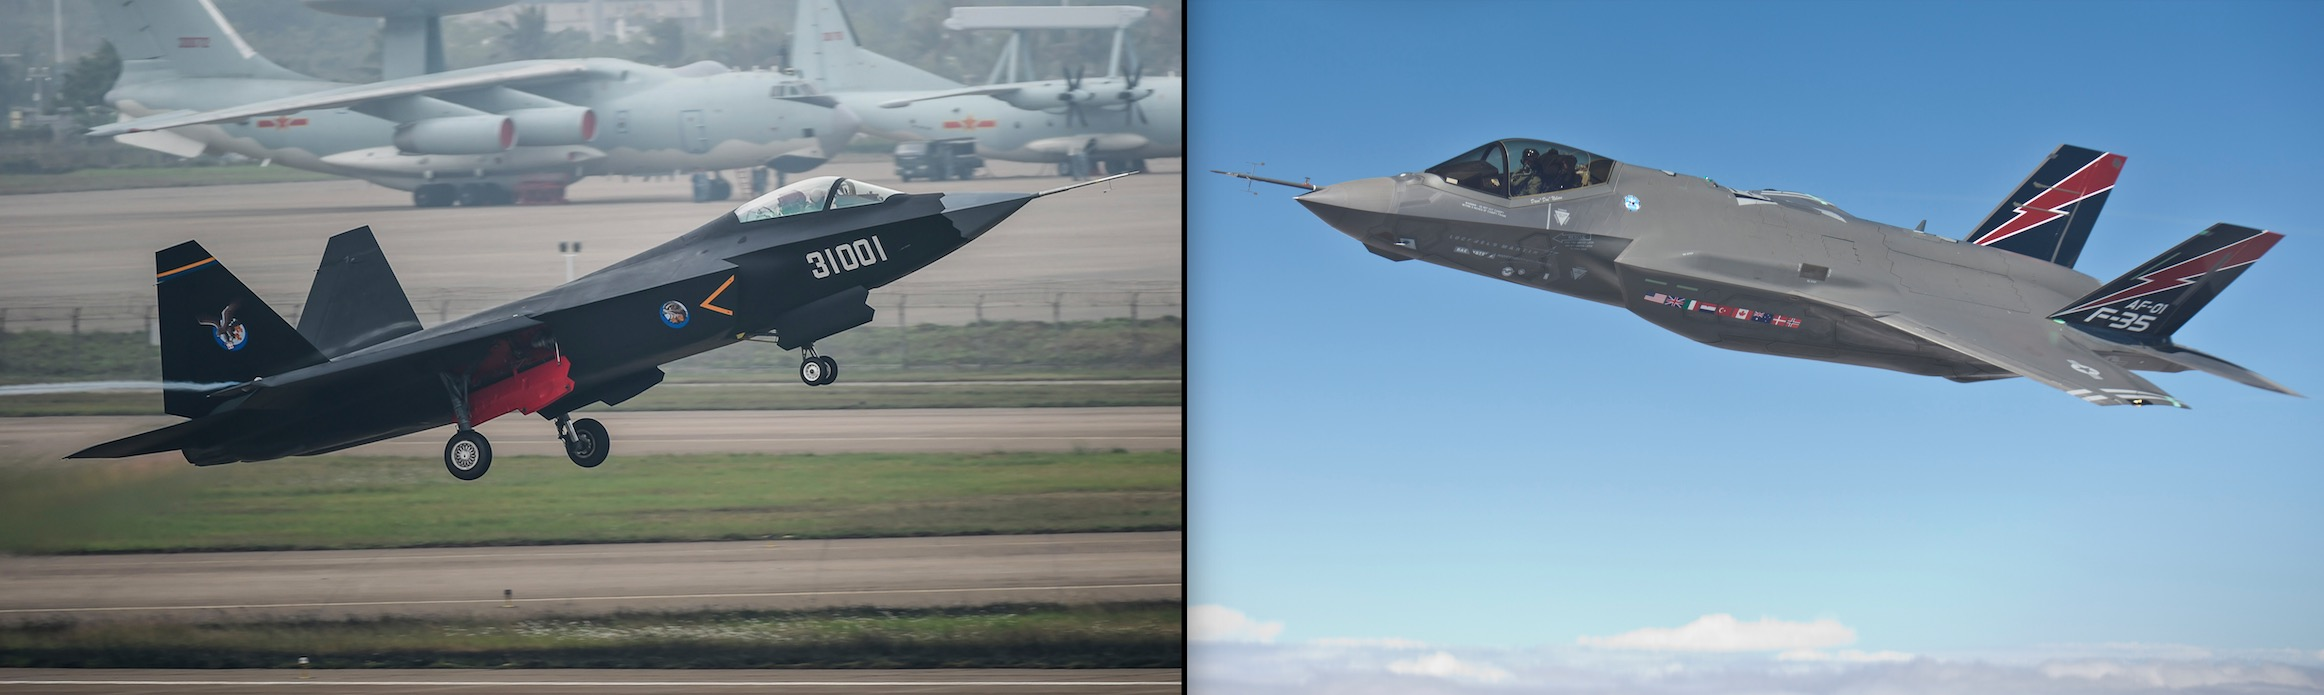 (L) A Chinese J-29 stealth fighter in Zhuhai, south China's Guangdong Province. (R) The U.S. F-35 fighter jet in which the Chinese modeled their J-29 after they hacked in to the U.S. government systems. (AP Photo/Xinhua/Liu Dawei & Lockheed Martin/Matt Short)